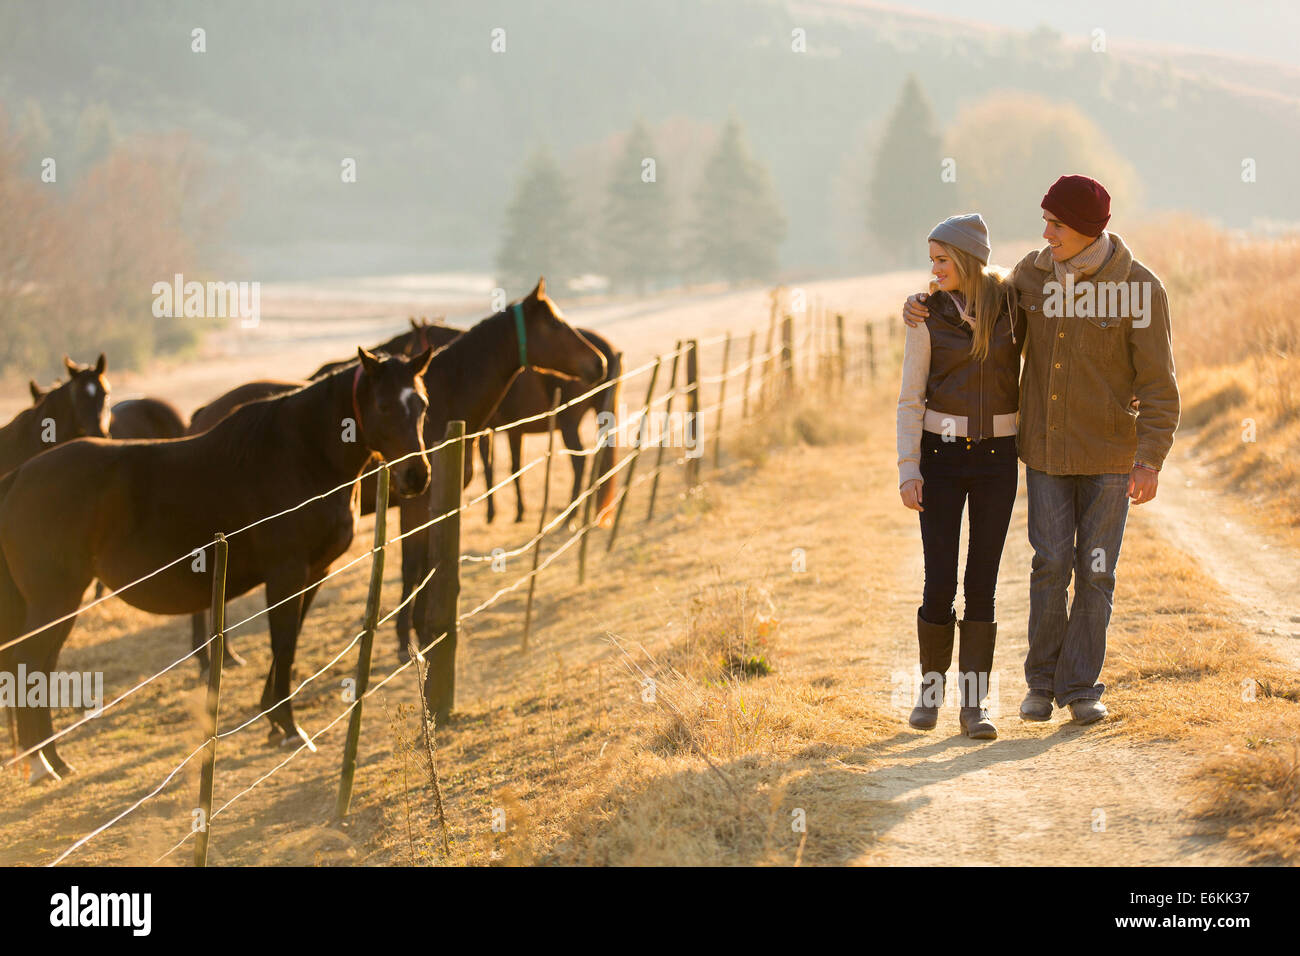 young romantic couple walking in the horse farm - Stock Image